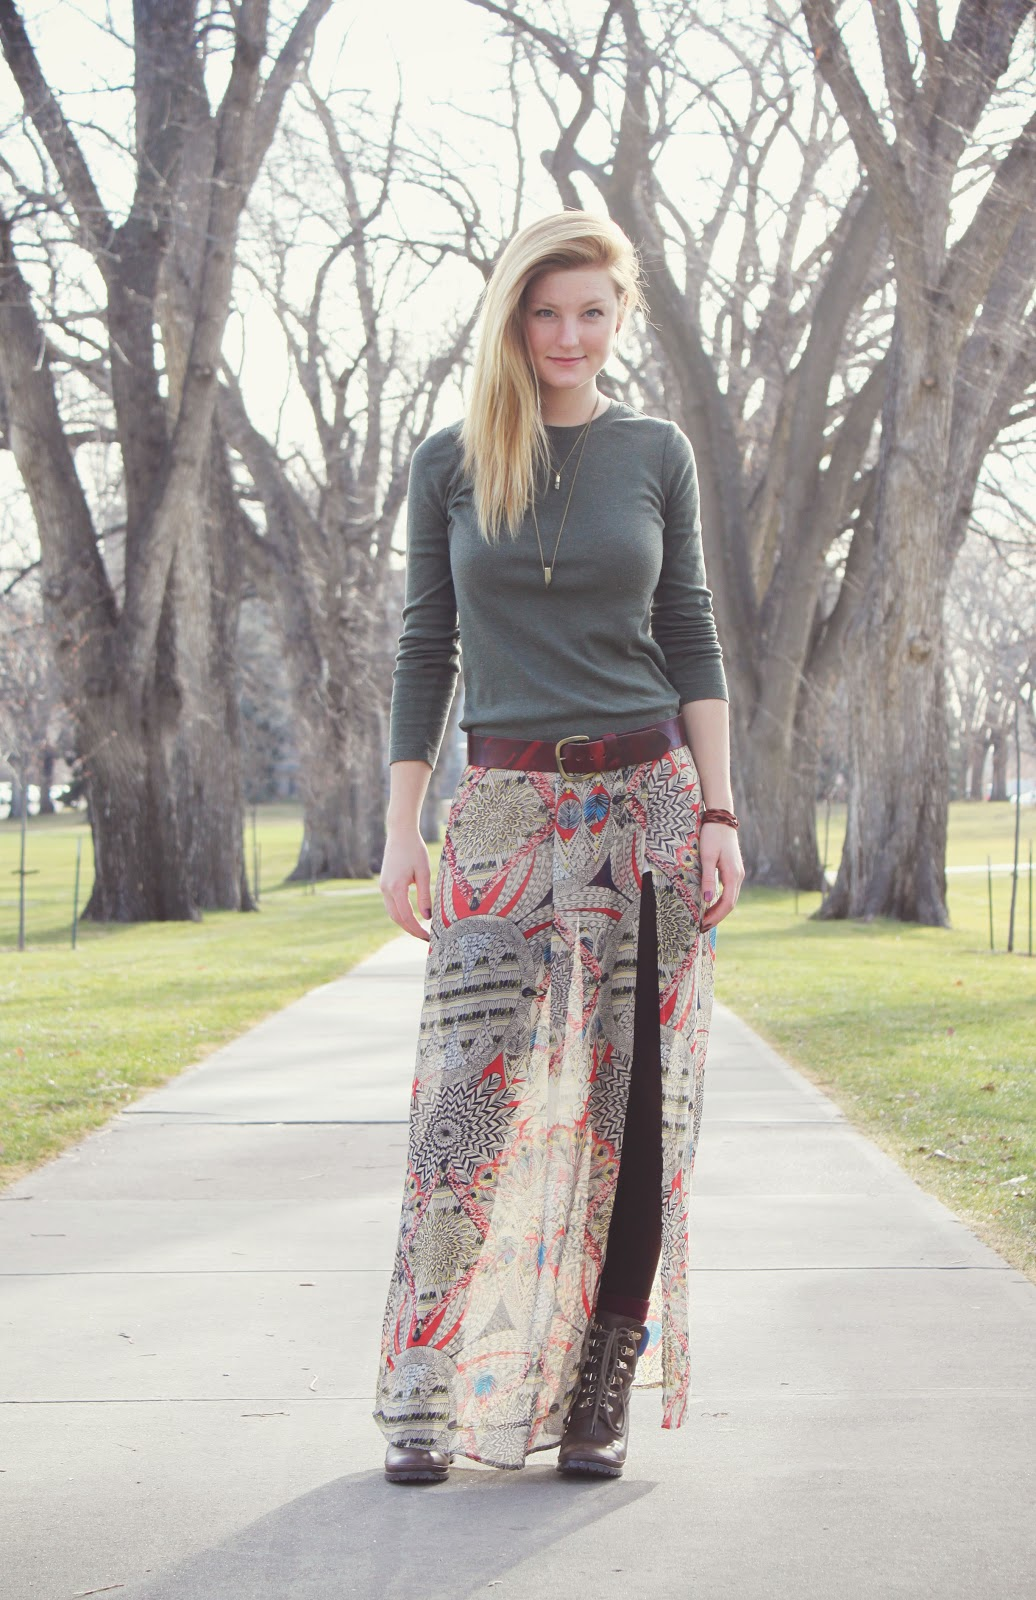 Colorado State University Student Jules Davies, wears a print diaphanous drape over skinny black jeans, combat boots and a charcoal top. Featured are her own jewelry designs which can be found at Fox Nine on Etsy